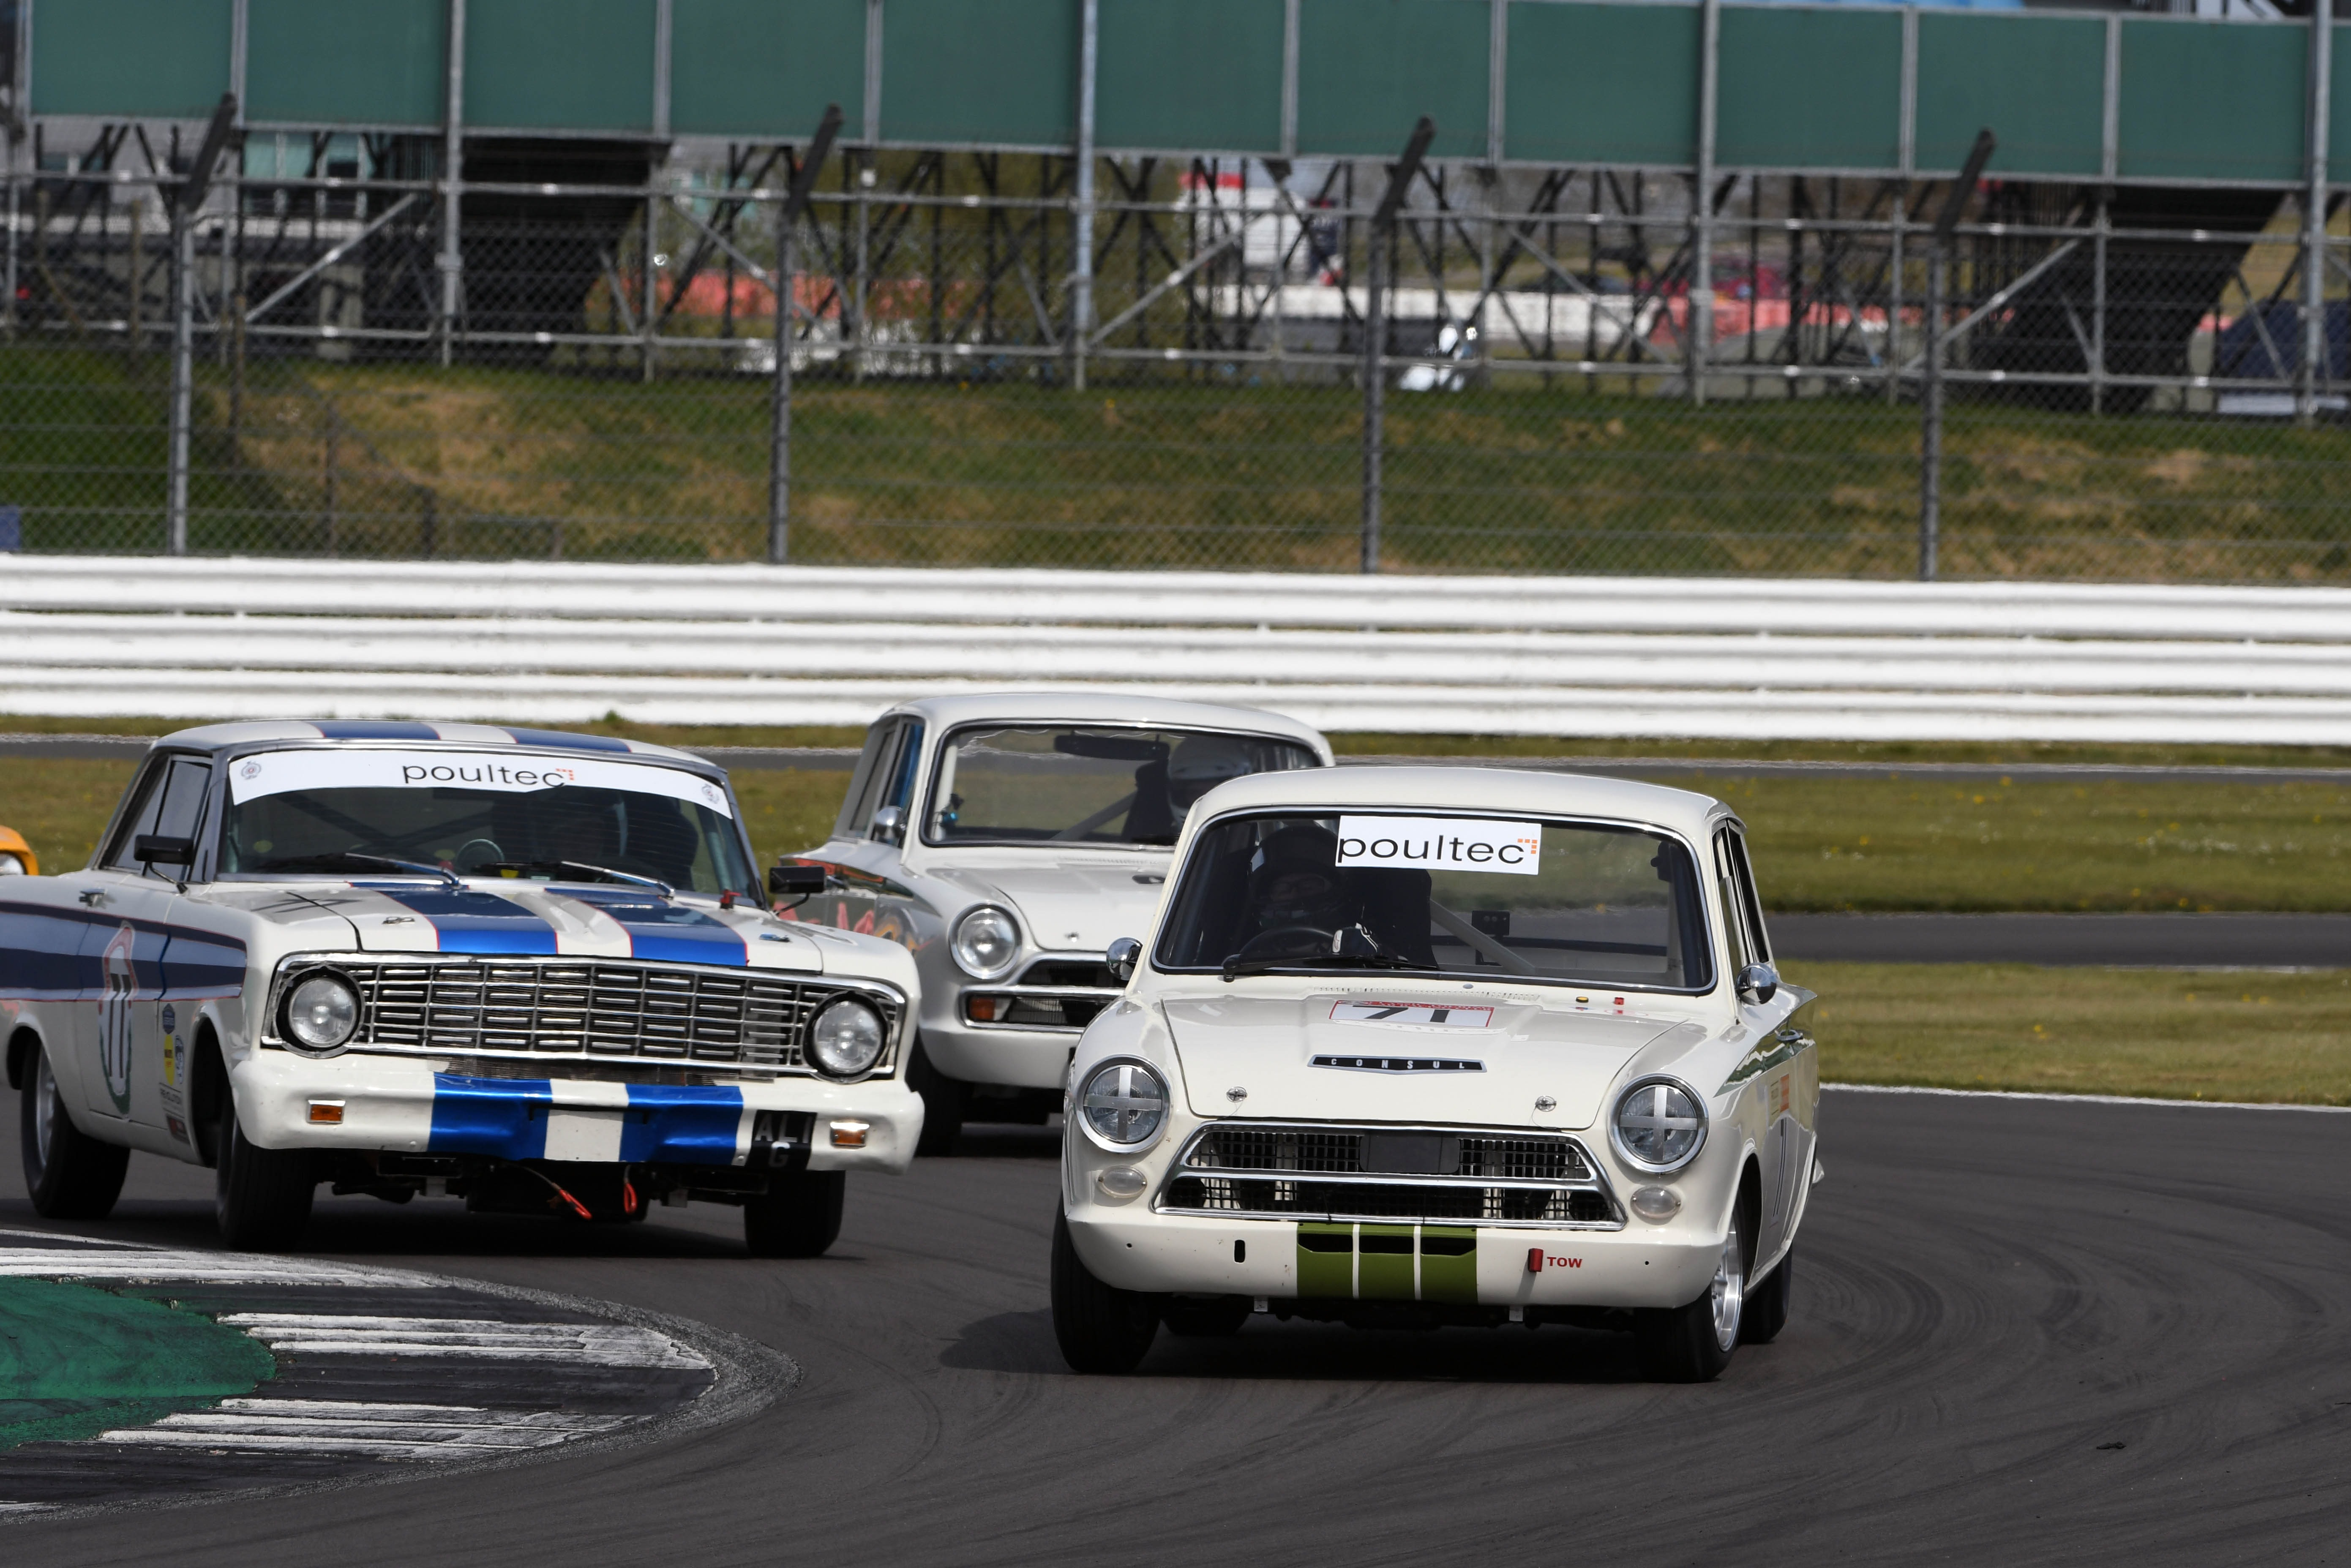 Peter Smith (Lotus Cortina), Pre-'66 Touring Cars, Silverstone